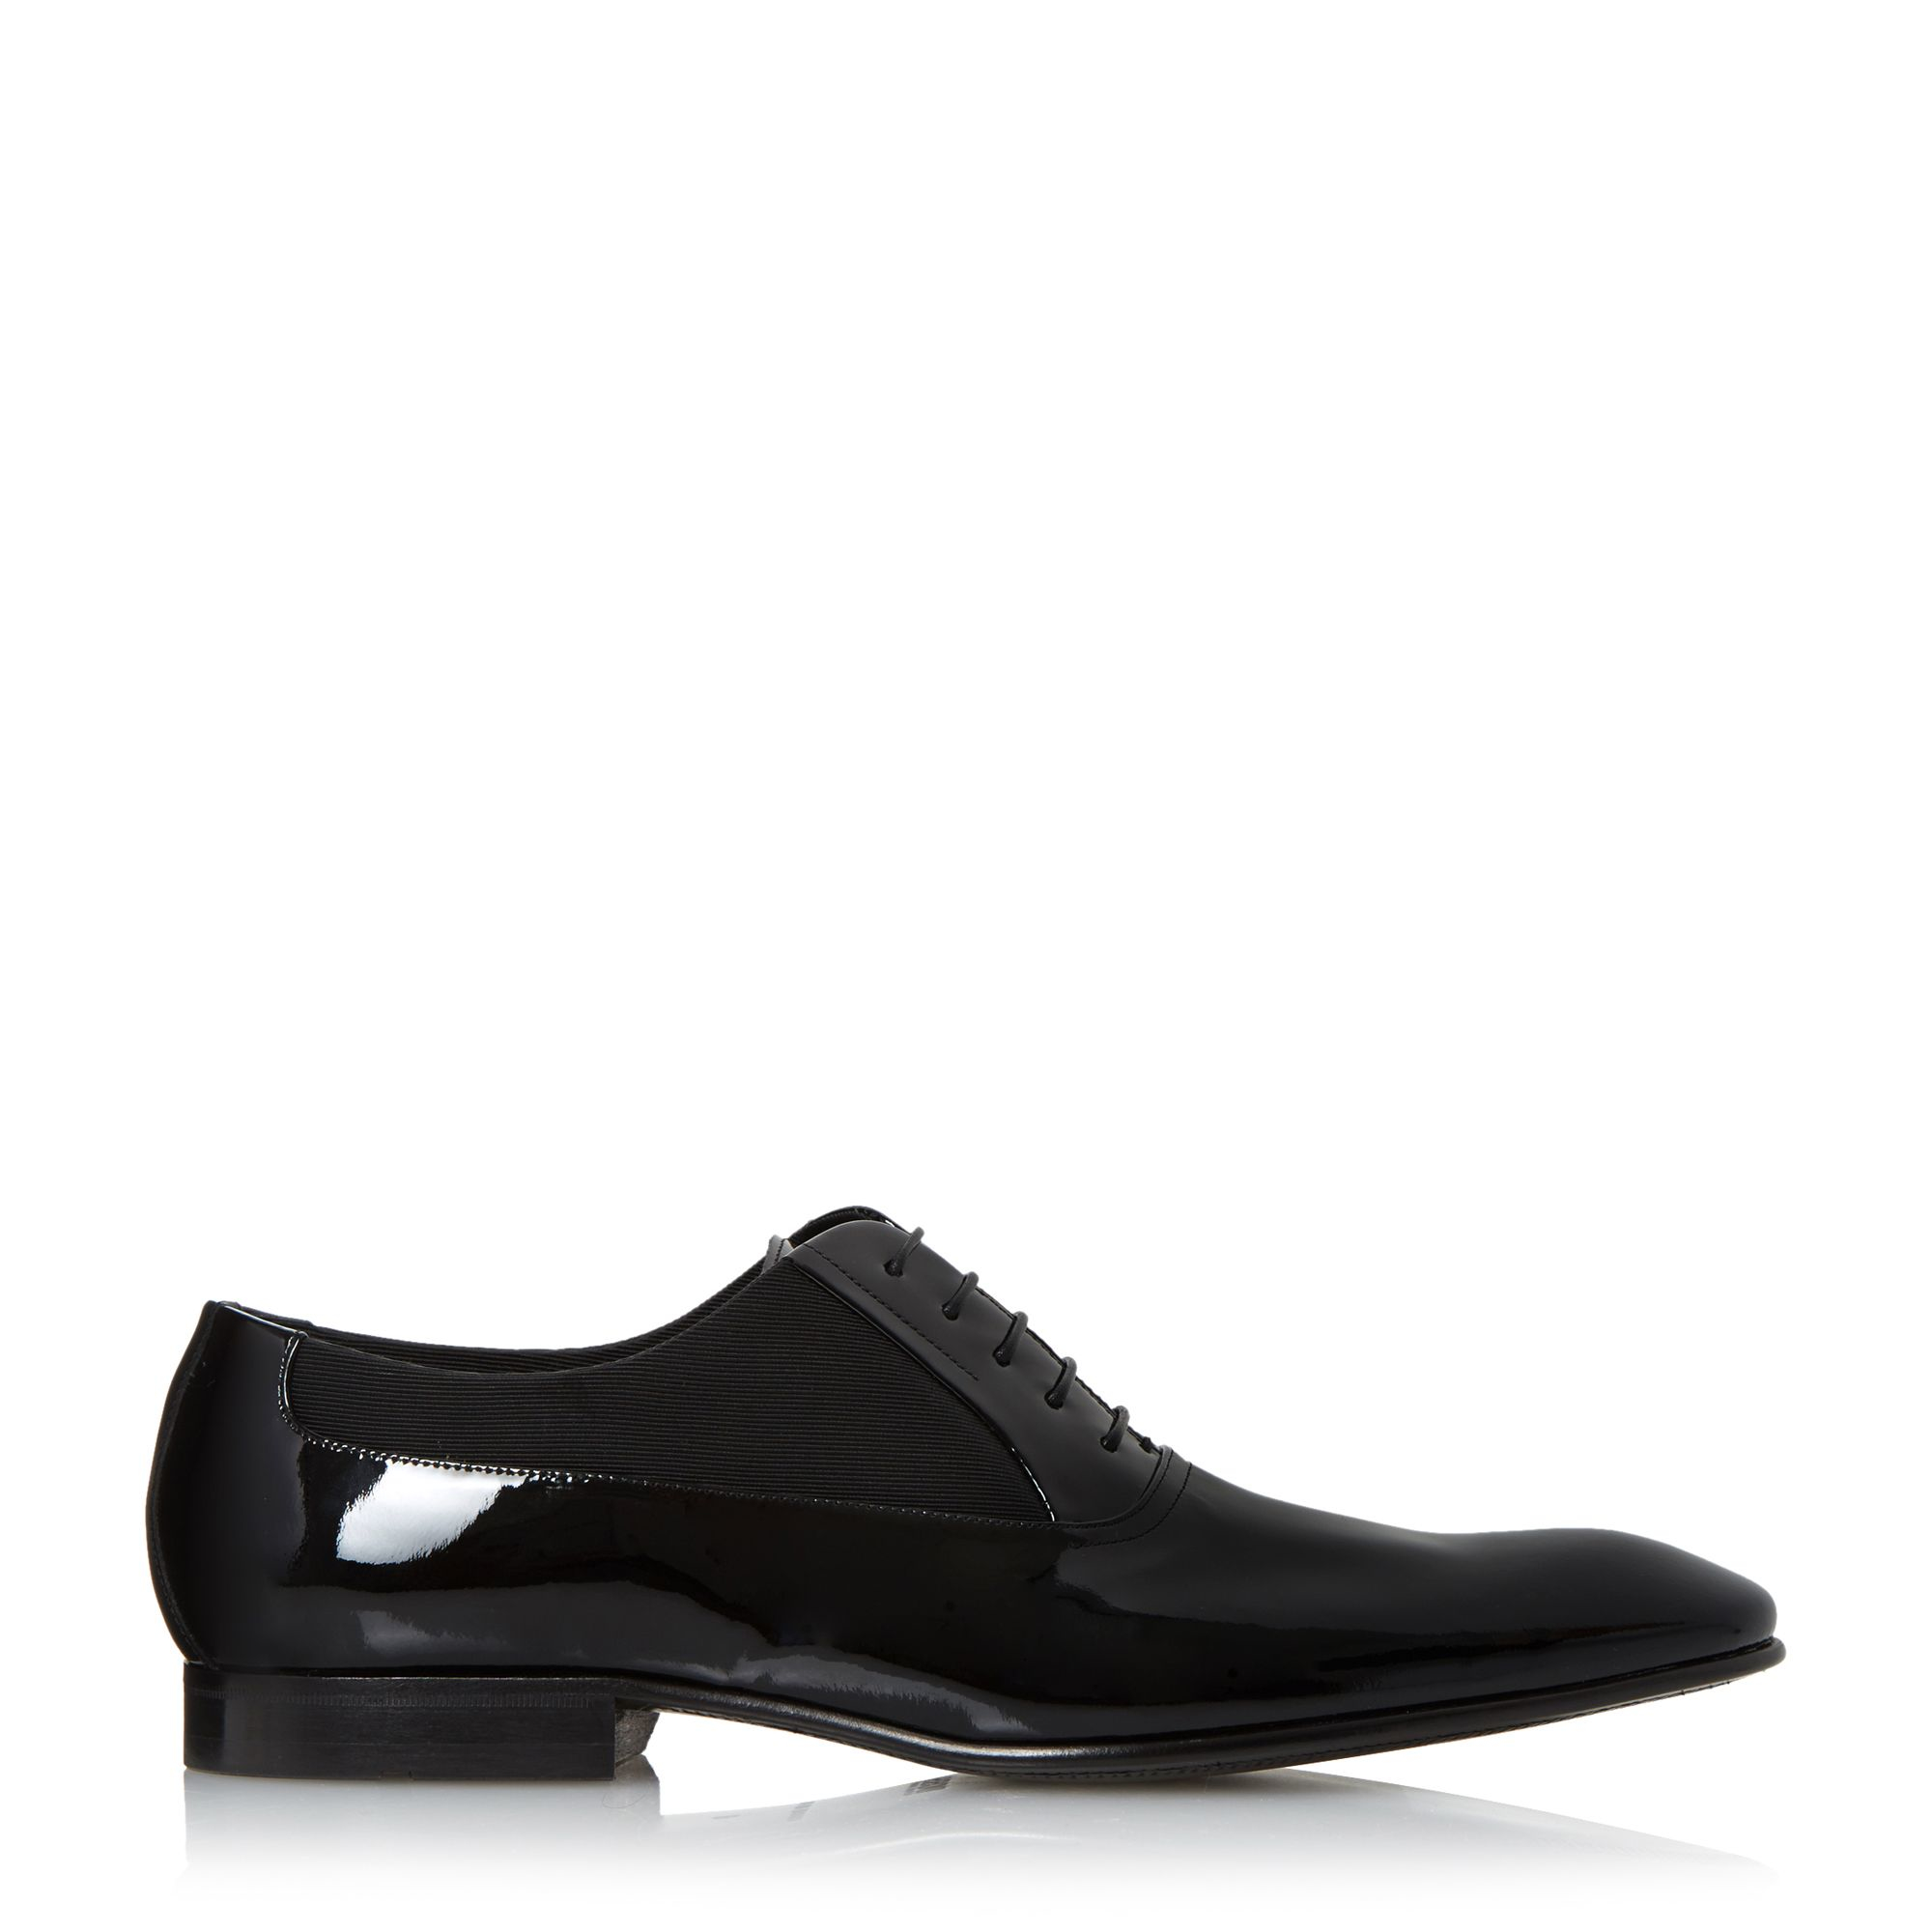 Versace Black Patent Leather Oxford Shoes